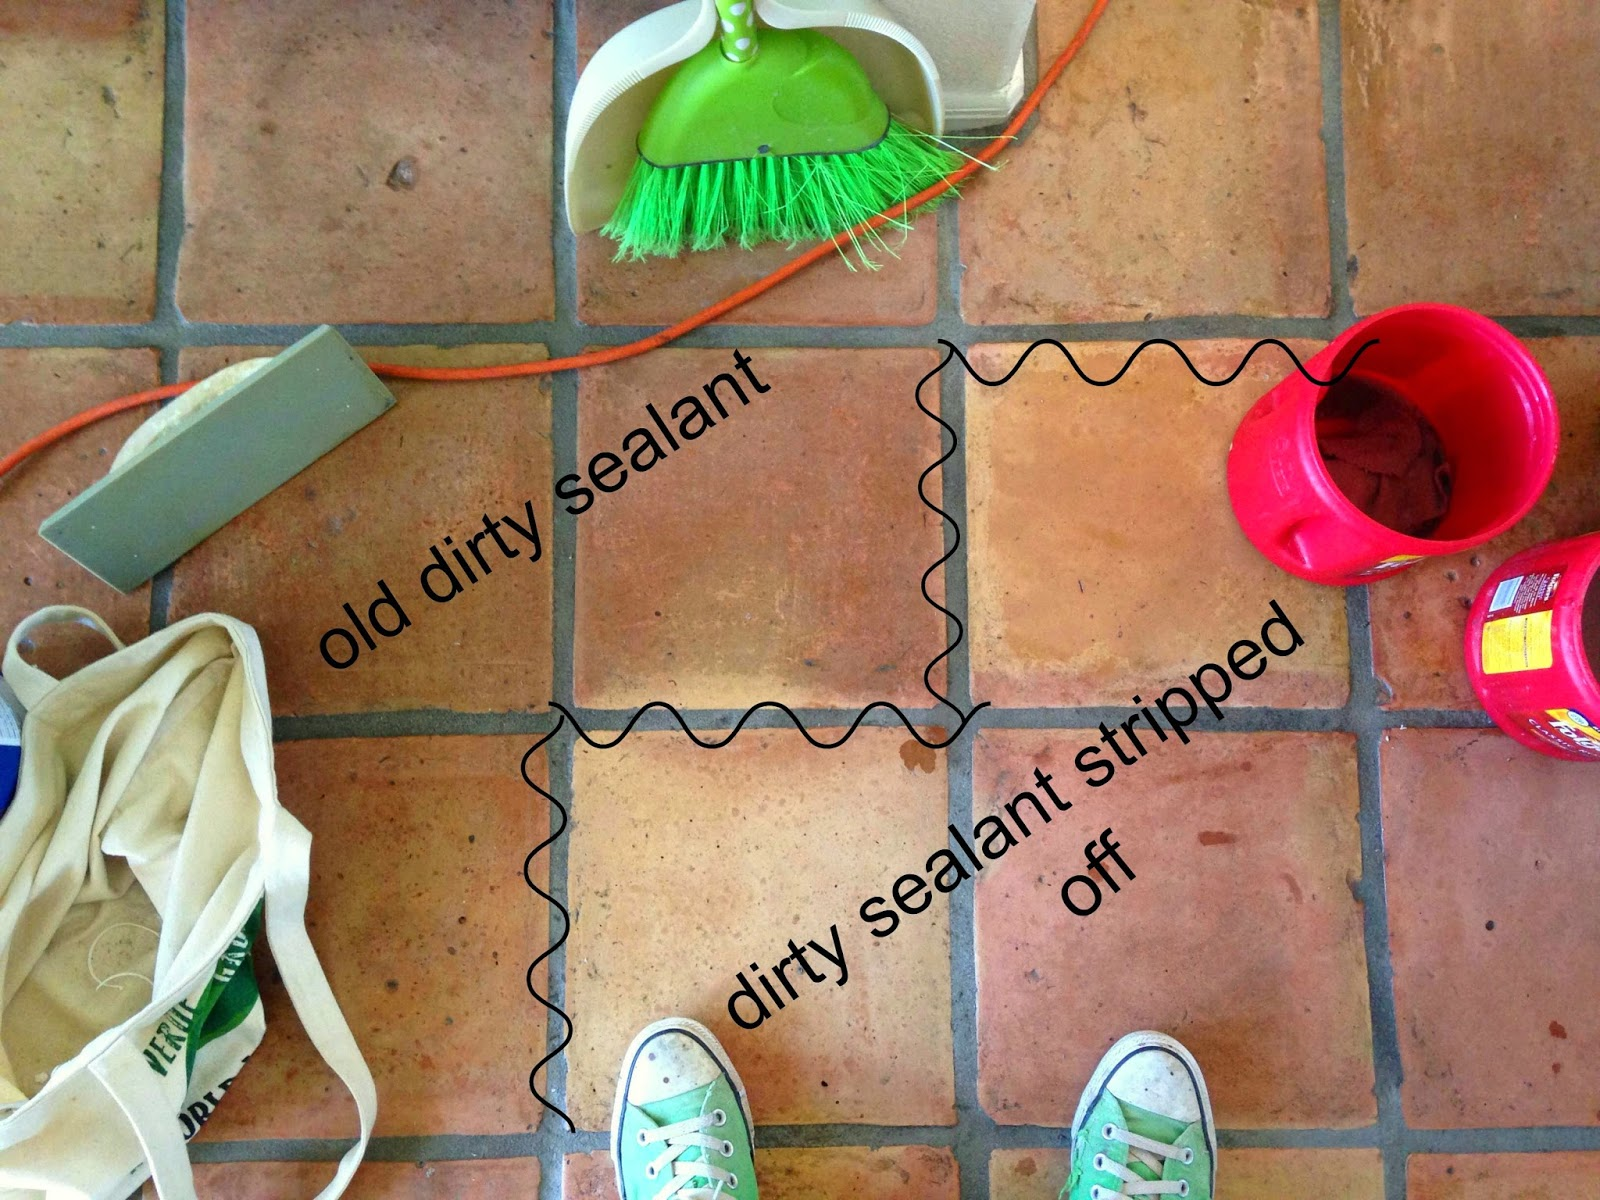 hhow to strip saltillo tile floors, strip saltillo tile, strip terracotta tile floor, saltillo tile floor care, how to clean saltillo tile floors, how to clean terracotta tile floorss